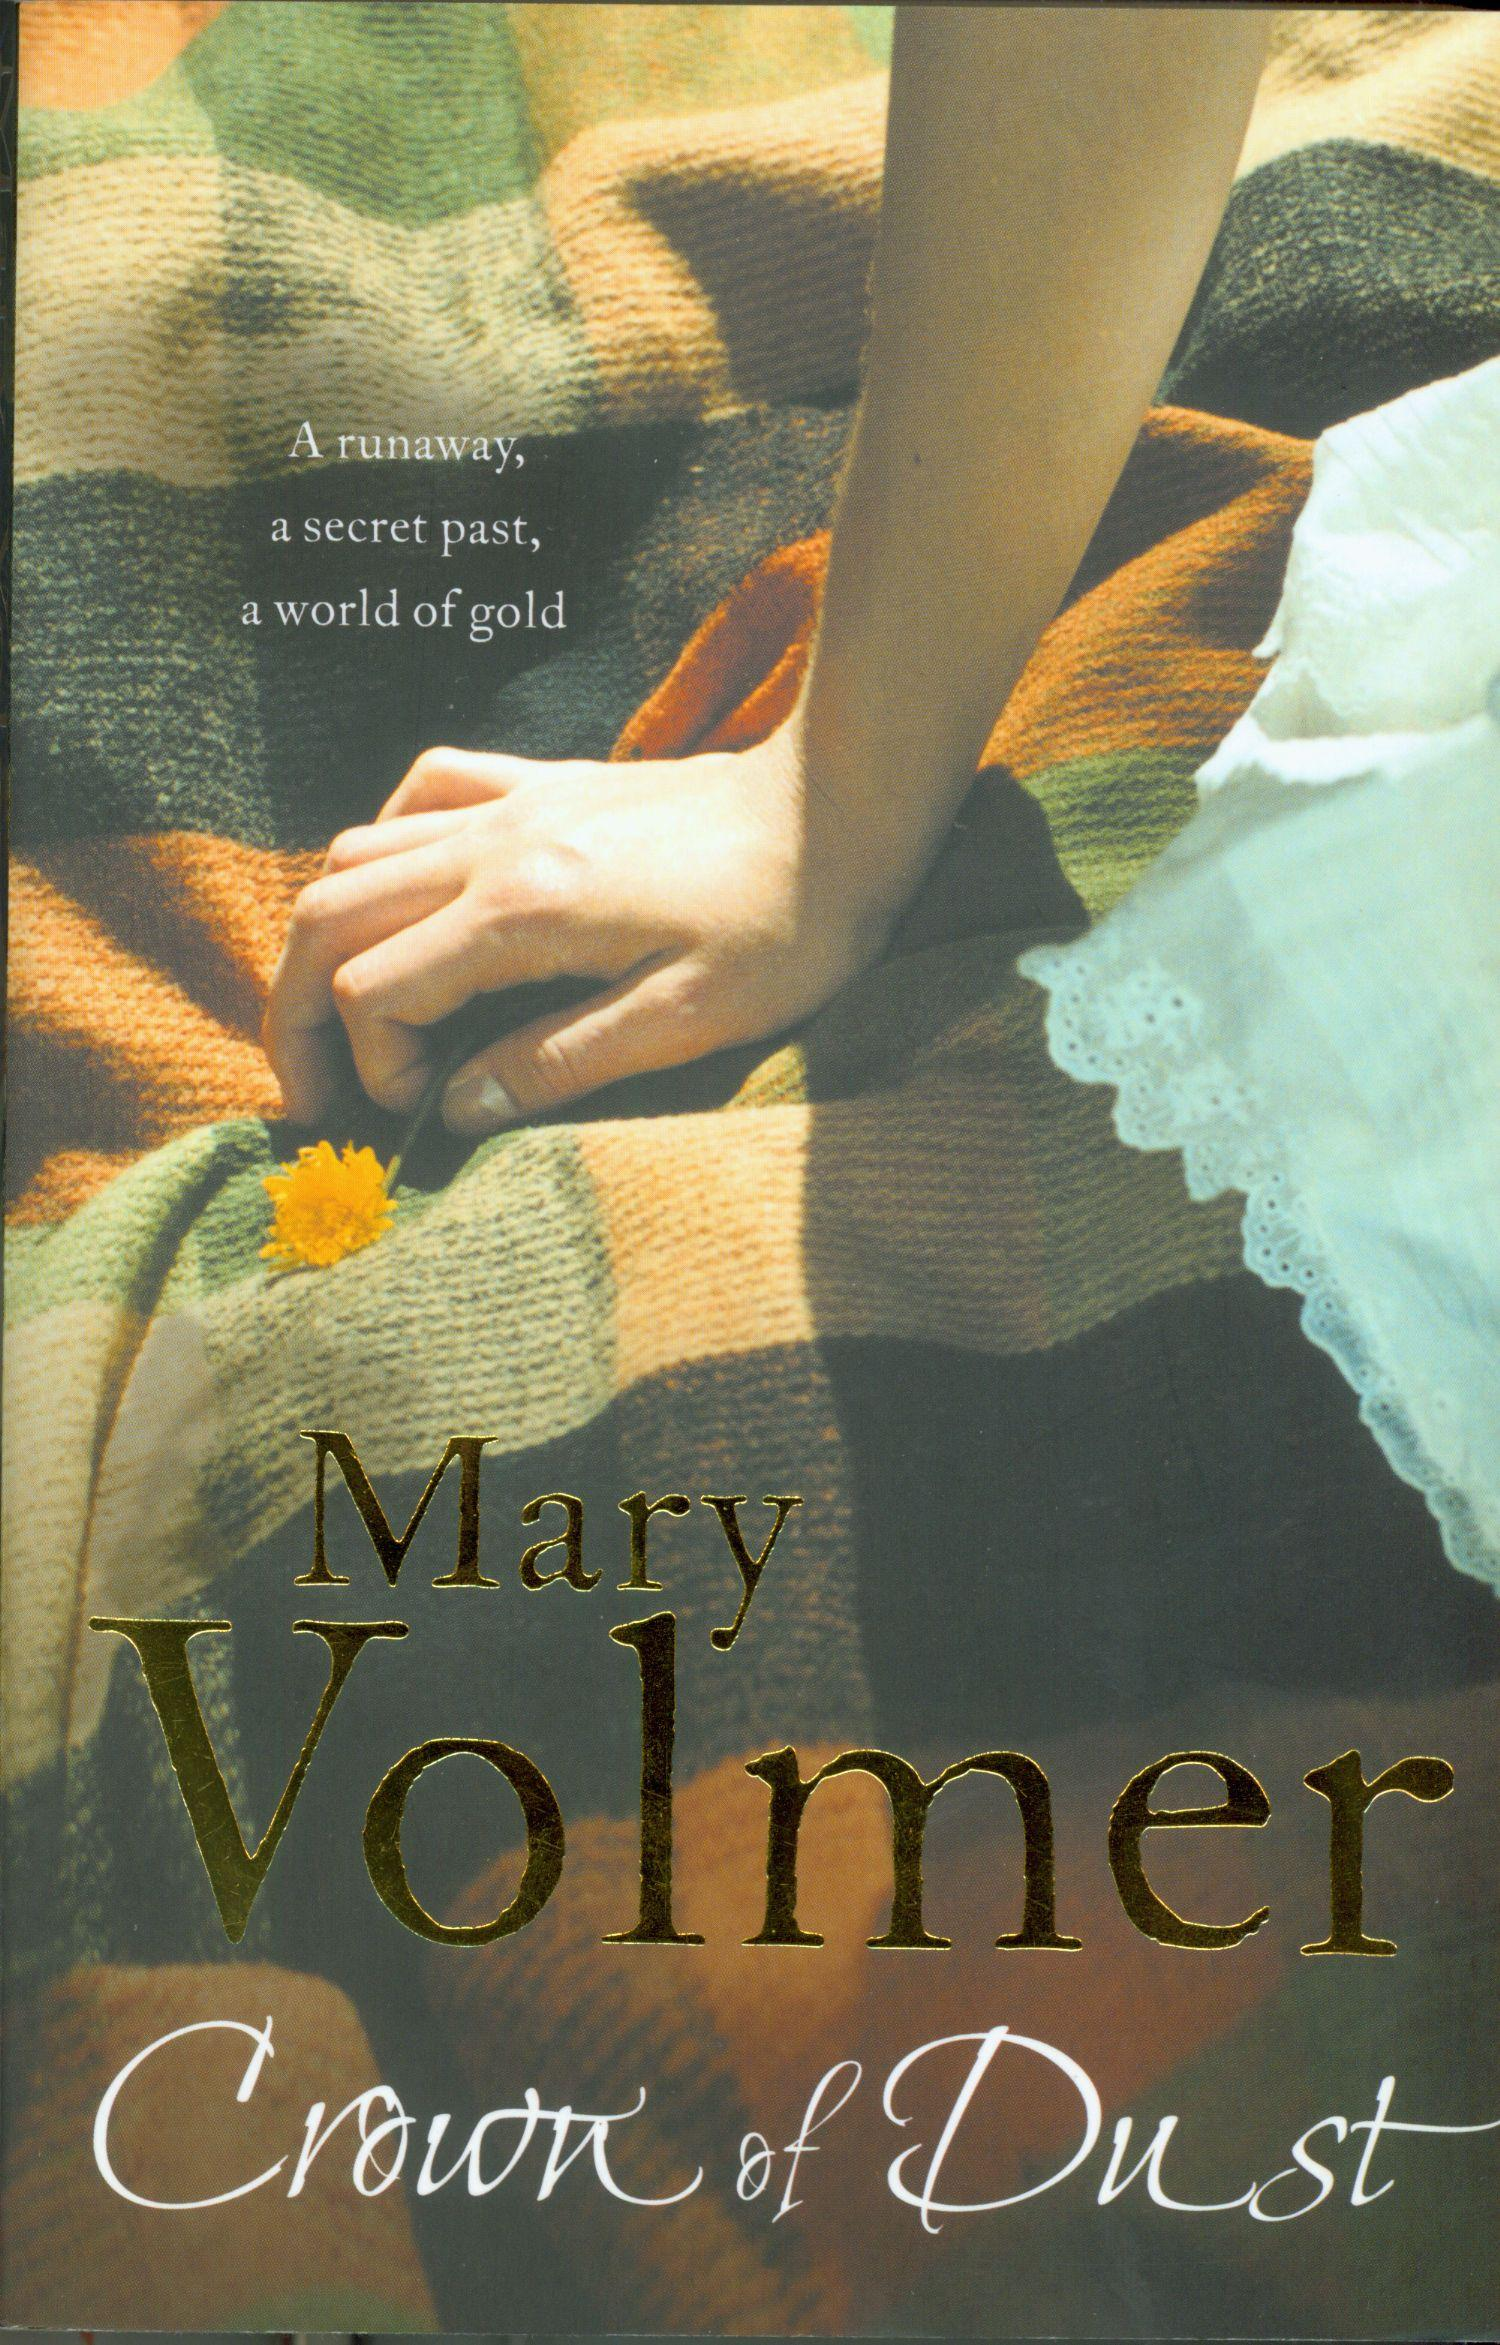 CROWN OF DUST BY MARY VOLMER